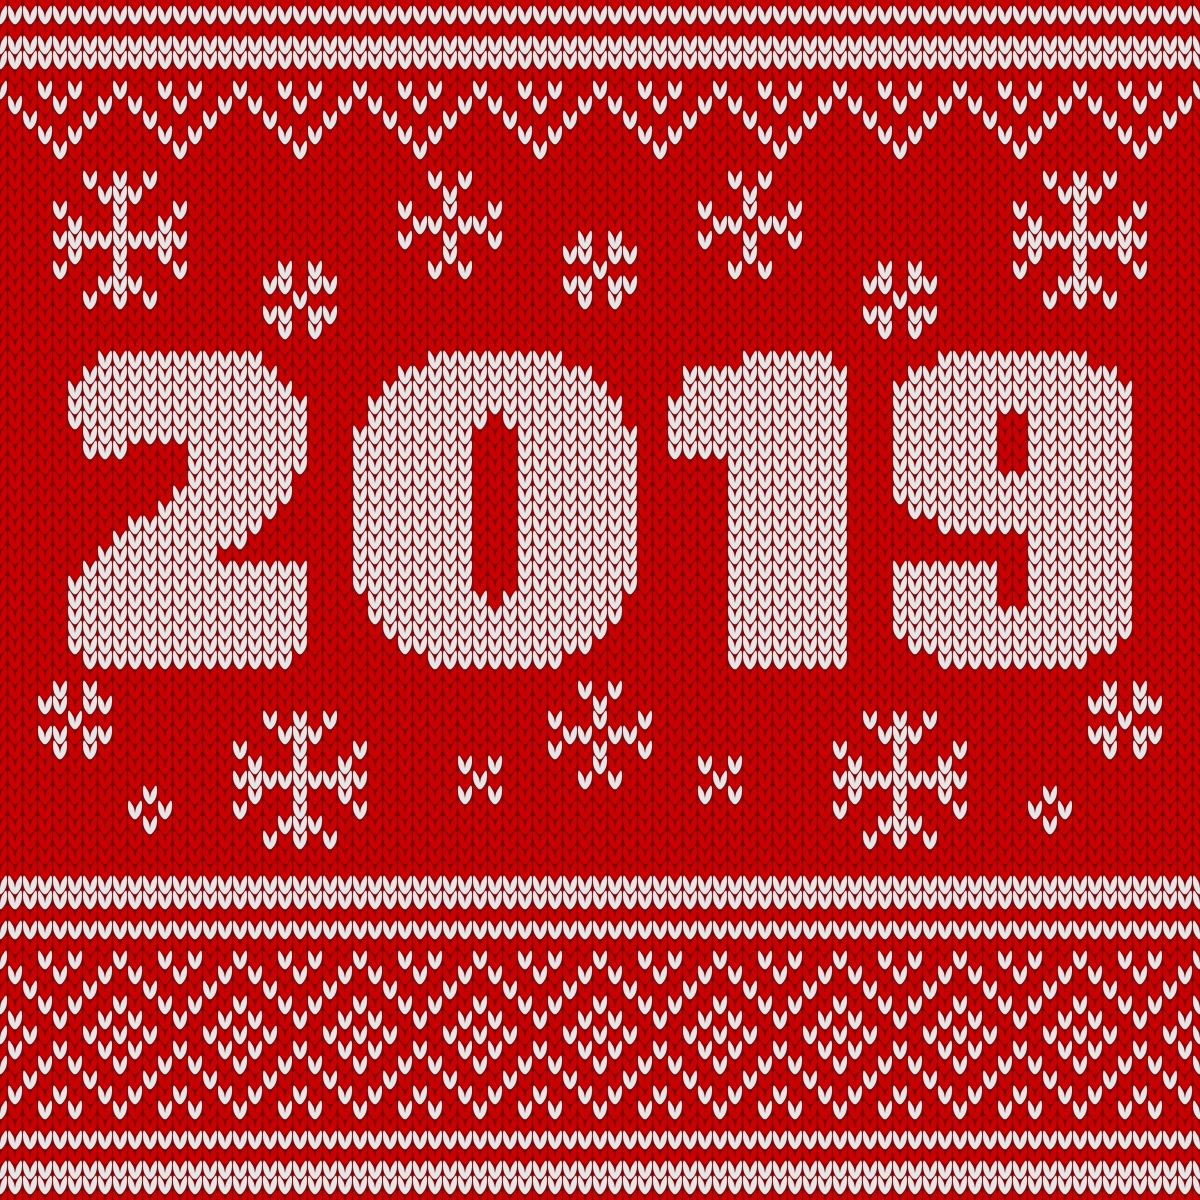 Knitted Pattern New Year Seamless Knitted Pattern With Number 2019 Knitting Sweater